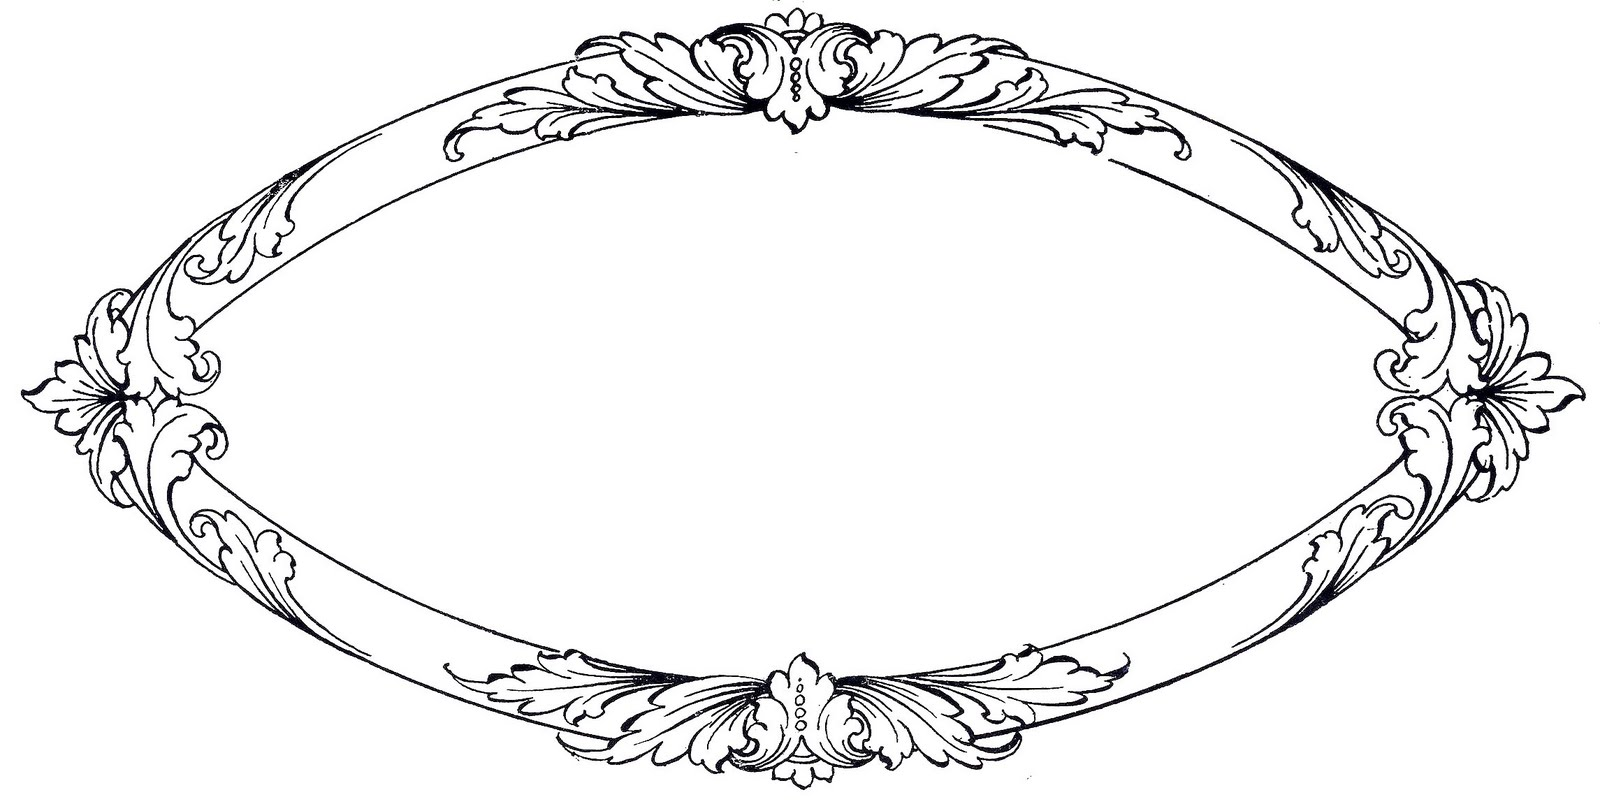 Vintage Clip Art Ornate Oval Frame With Scrolls